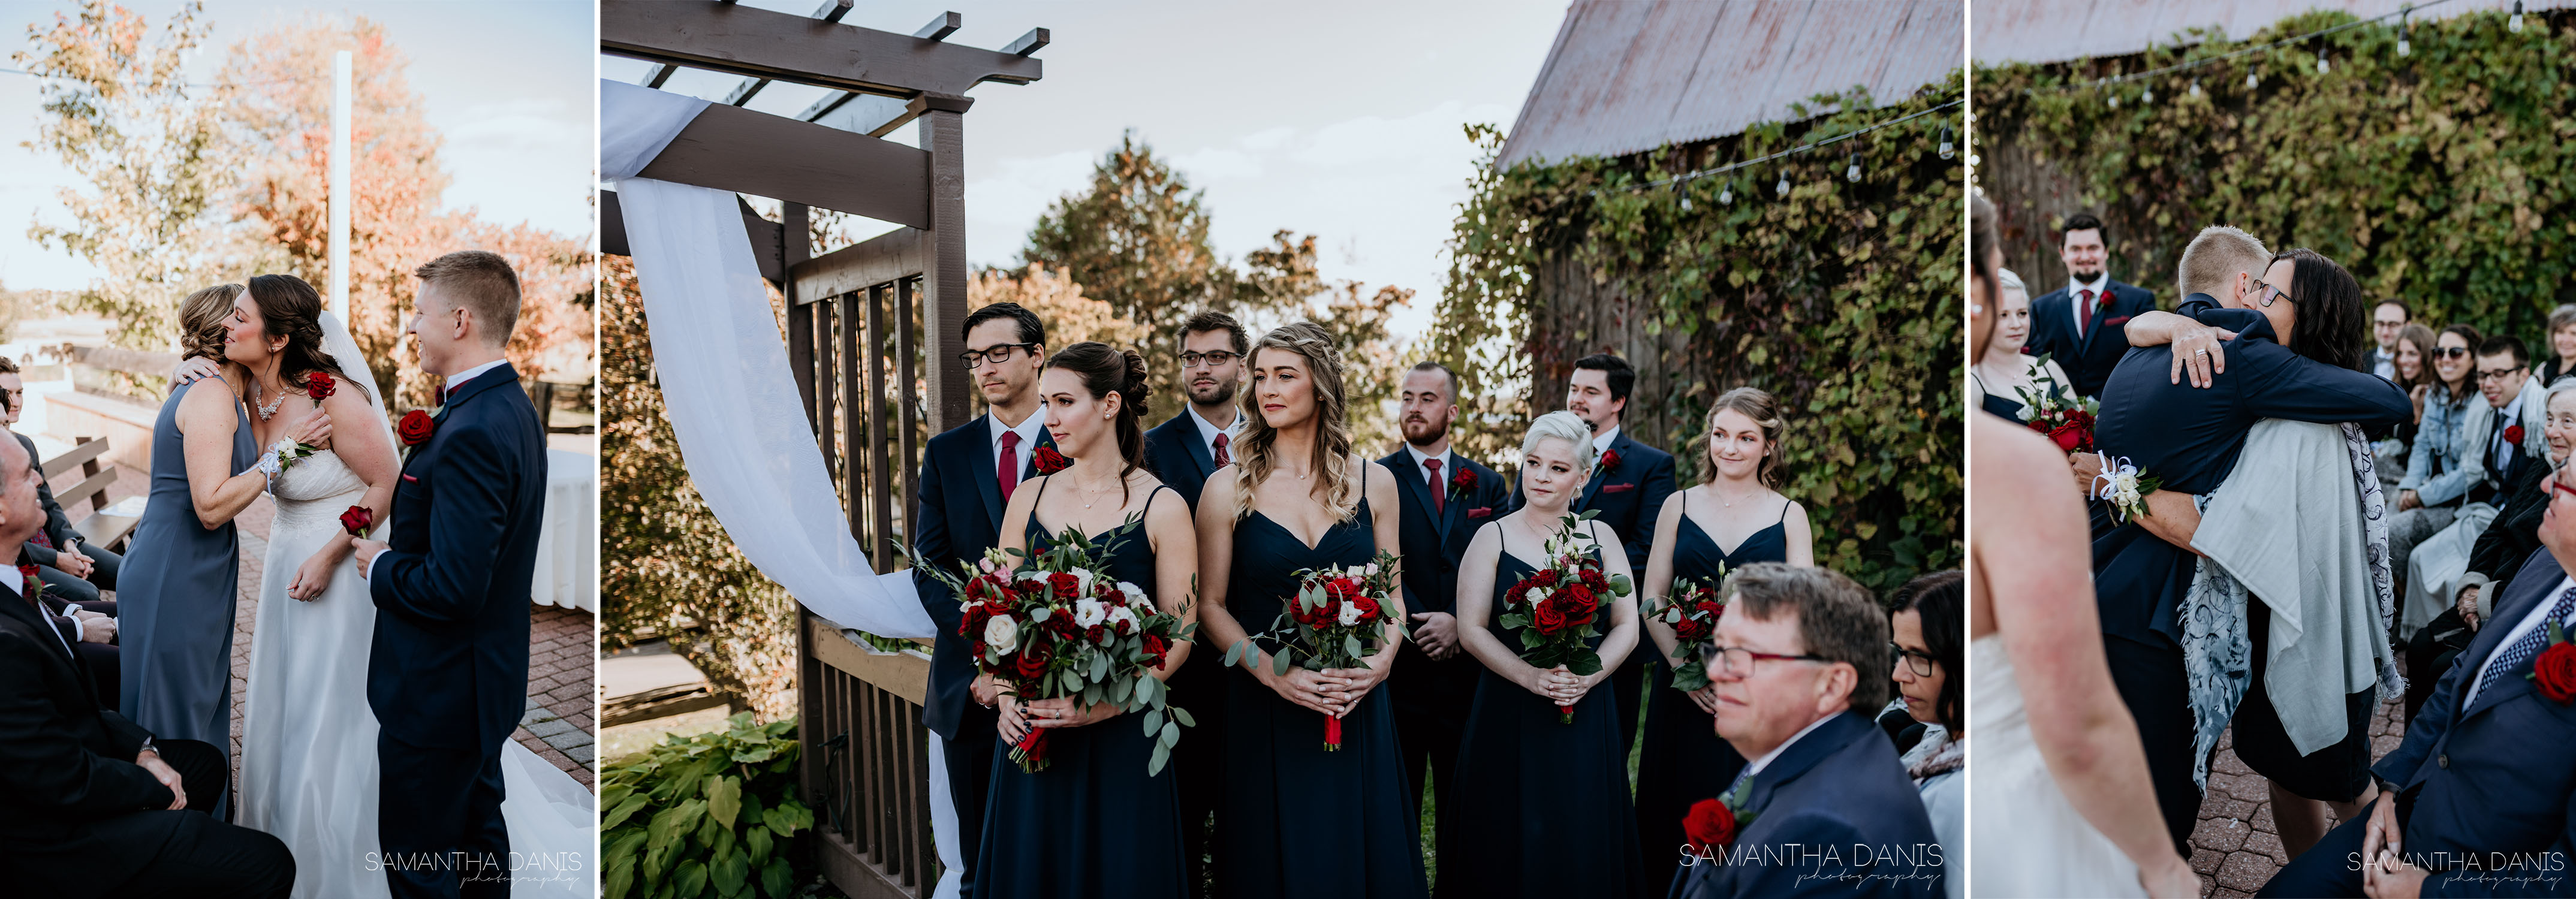 rose ceremony strathmere ottawa wedding fall